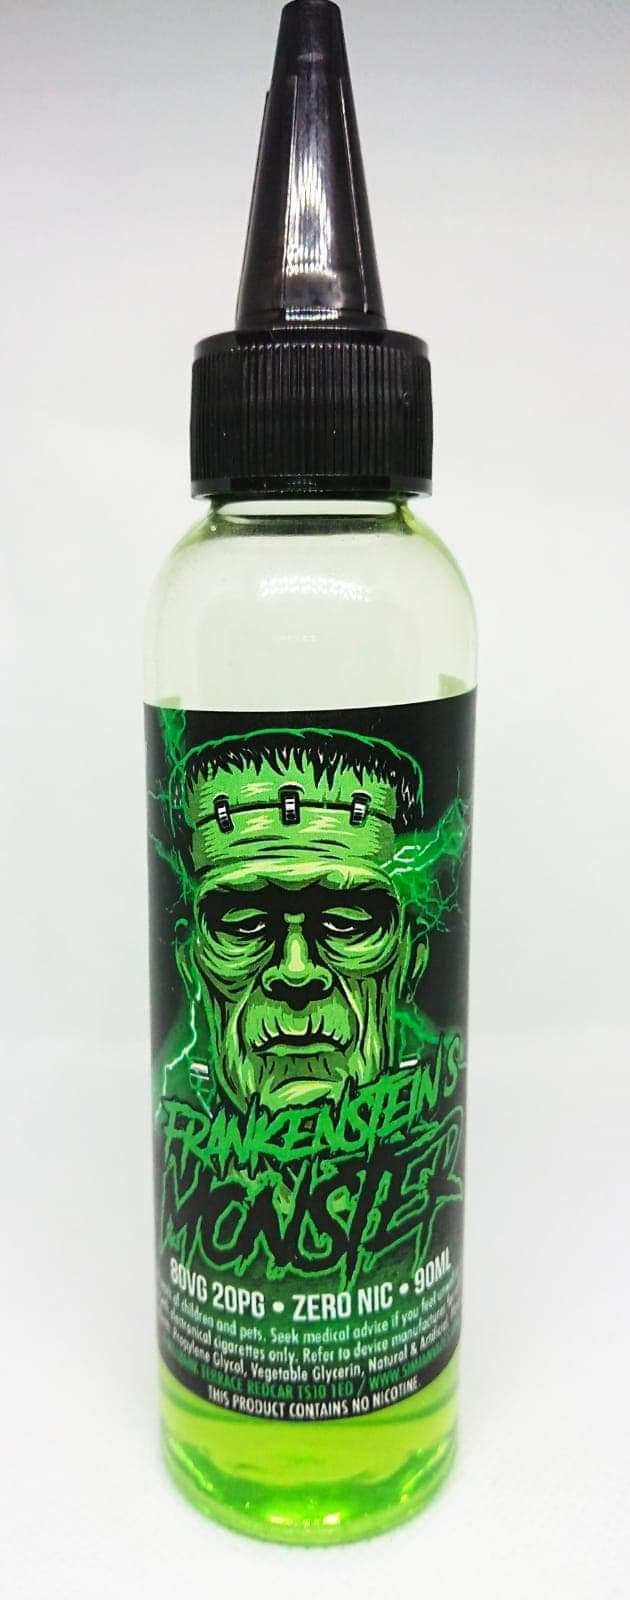 Frankenstine's Monster 90mls